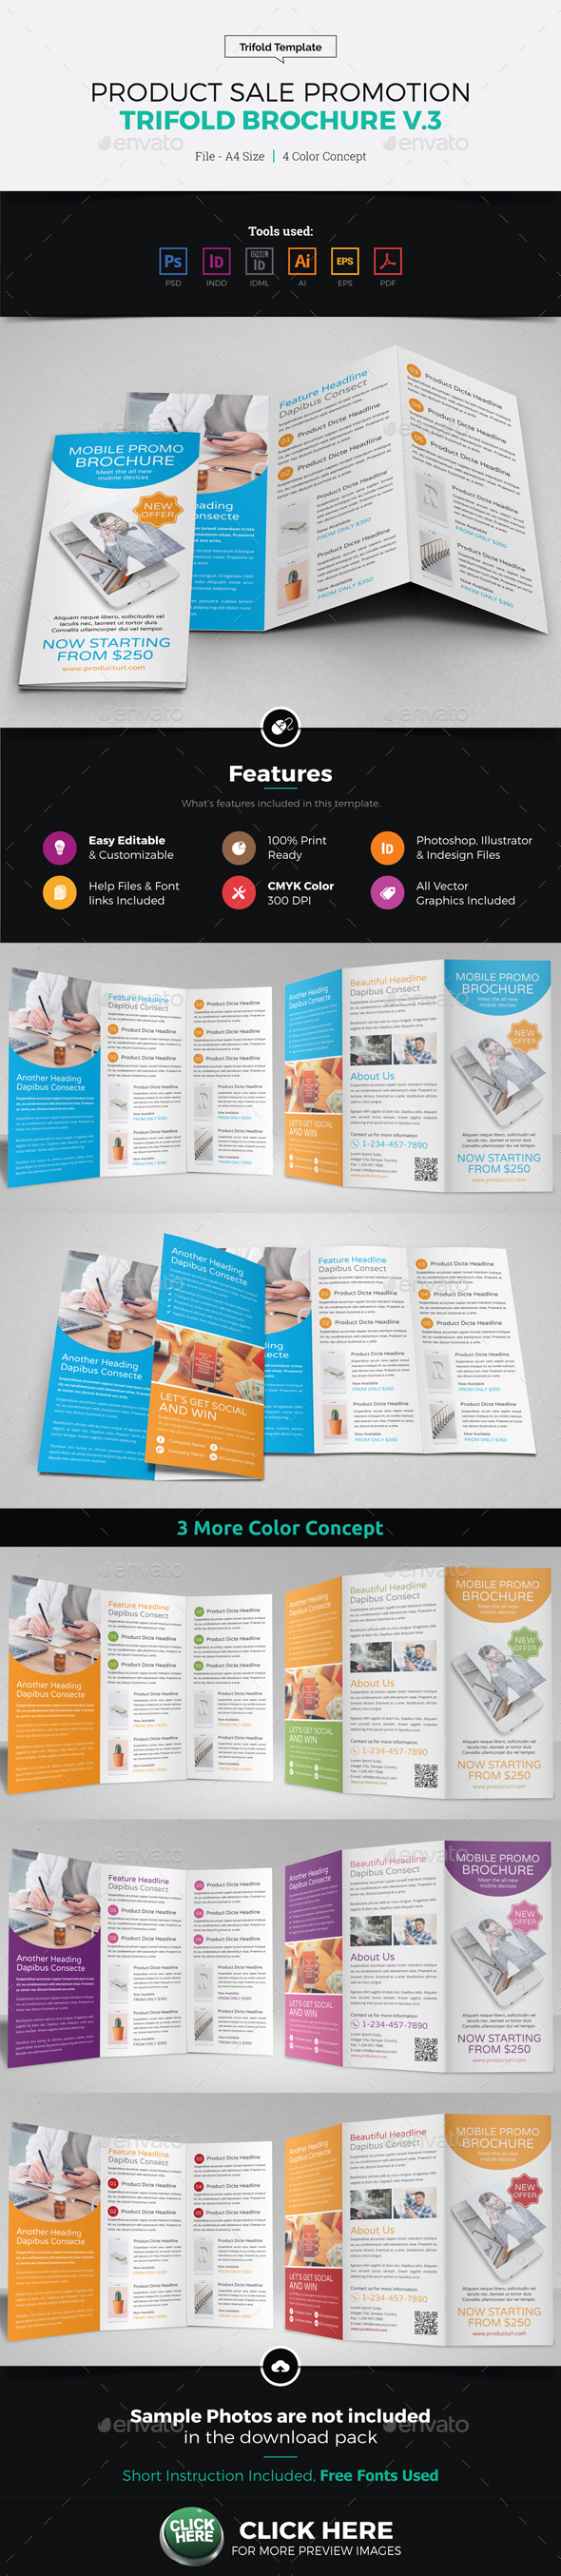 Product Sale Promotion Trifold Brochure v3 - Corporate Brochures